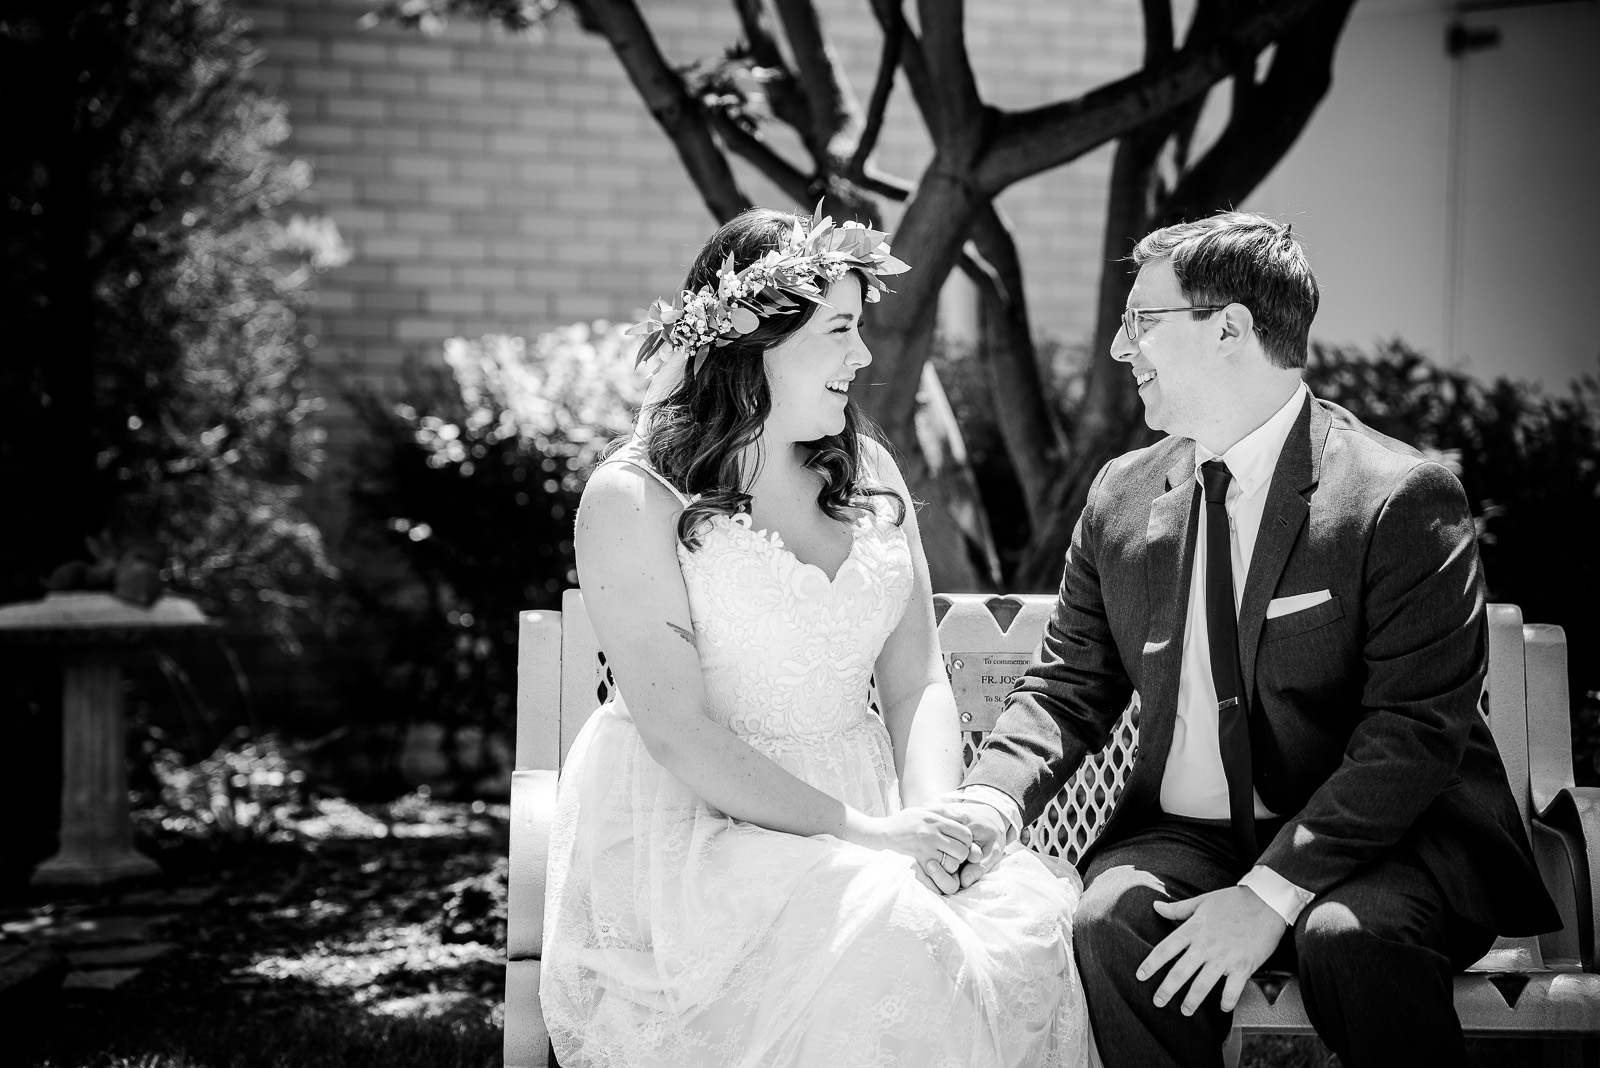 Eric_and_Christy_Photography_Blog_Wedding_Keara&Andy-6